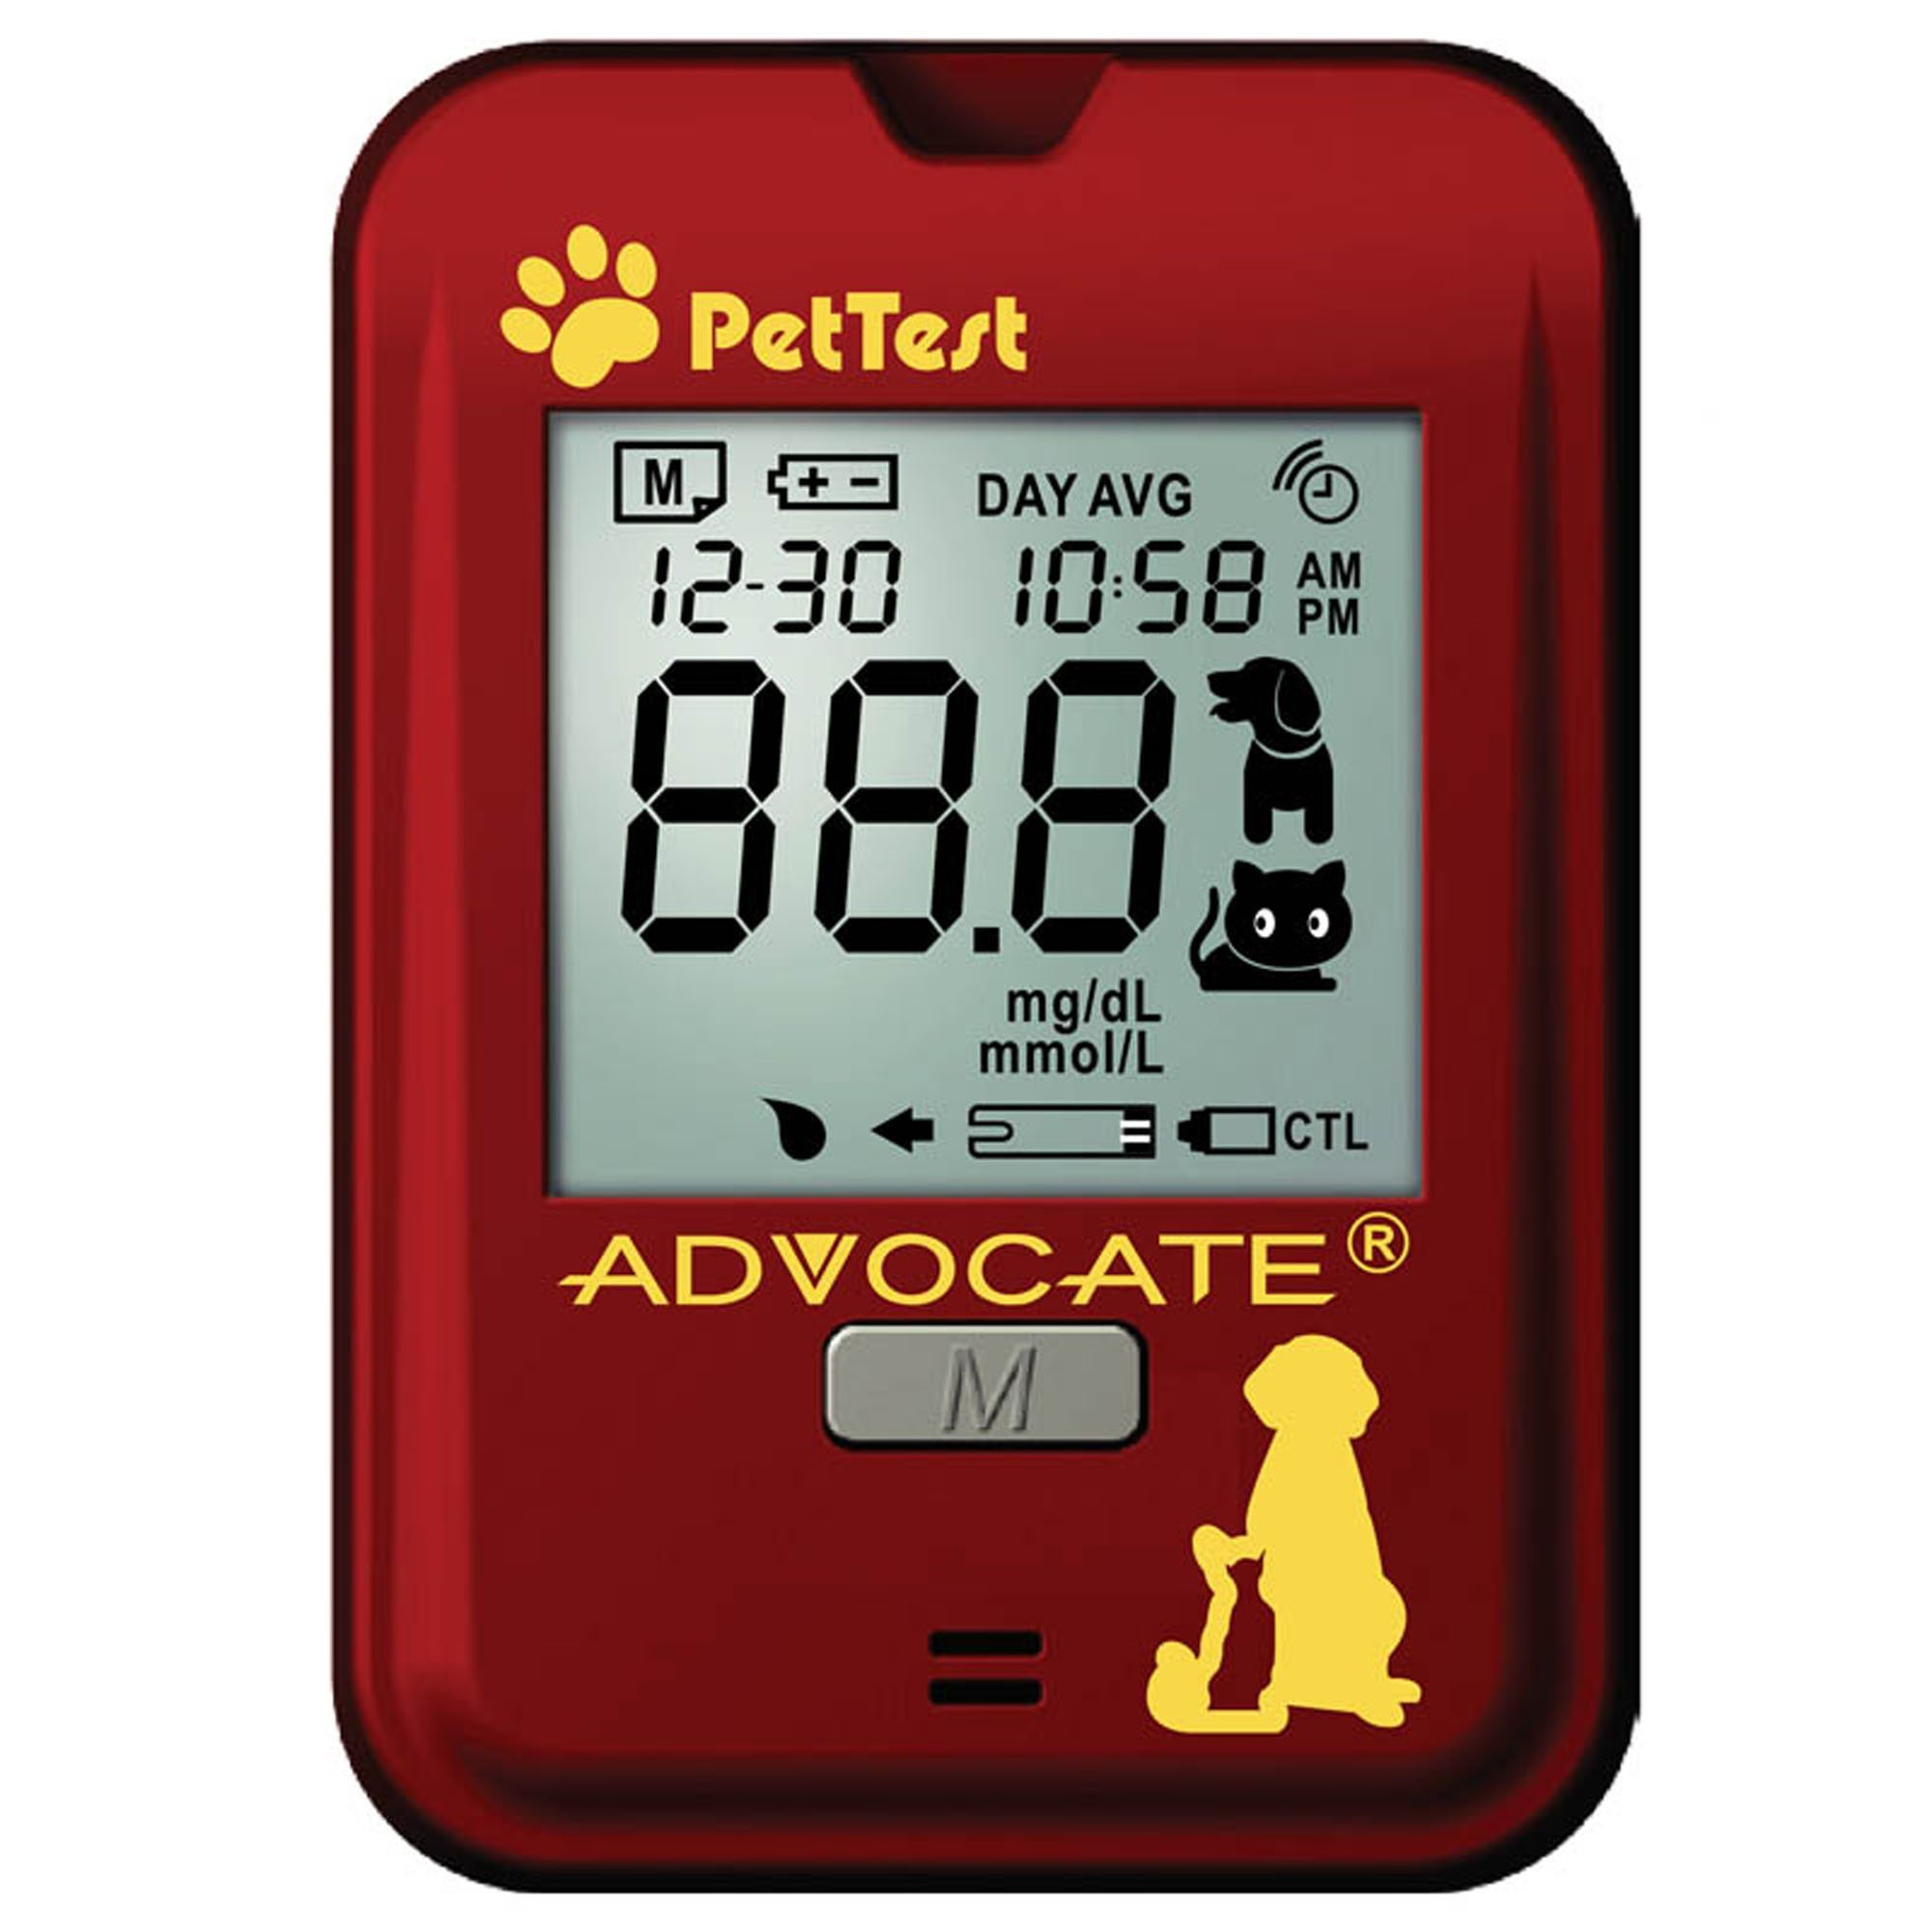 Advocate Pet Test Blood Glucose Monitoring System for Dogs/Cats PT-100 by Advocate